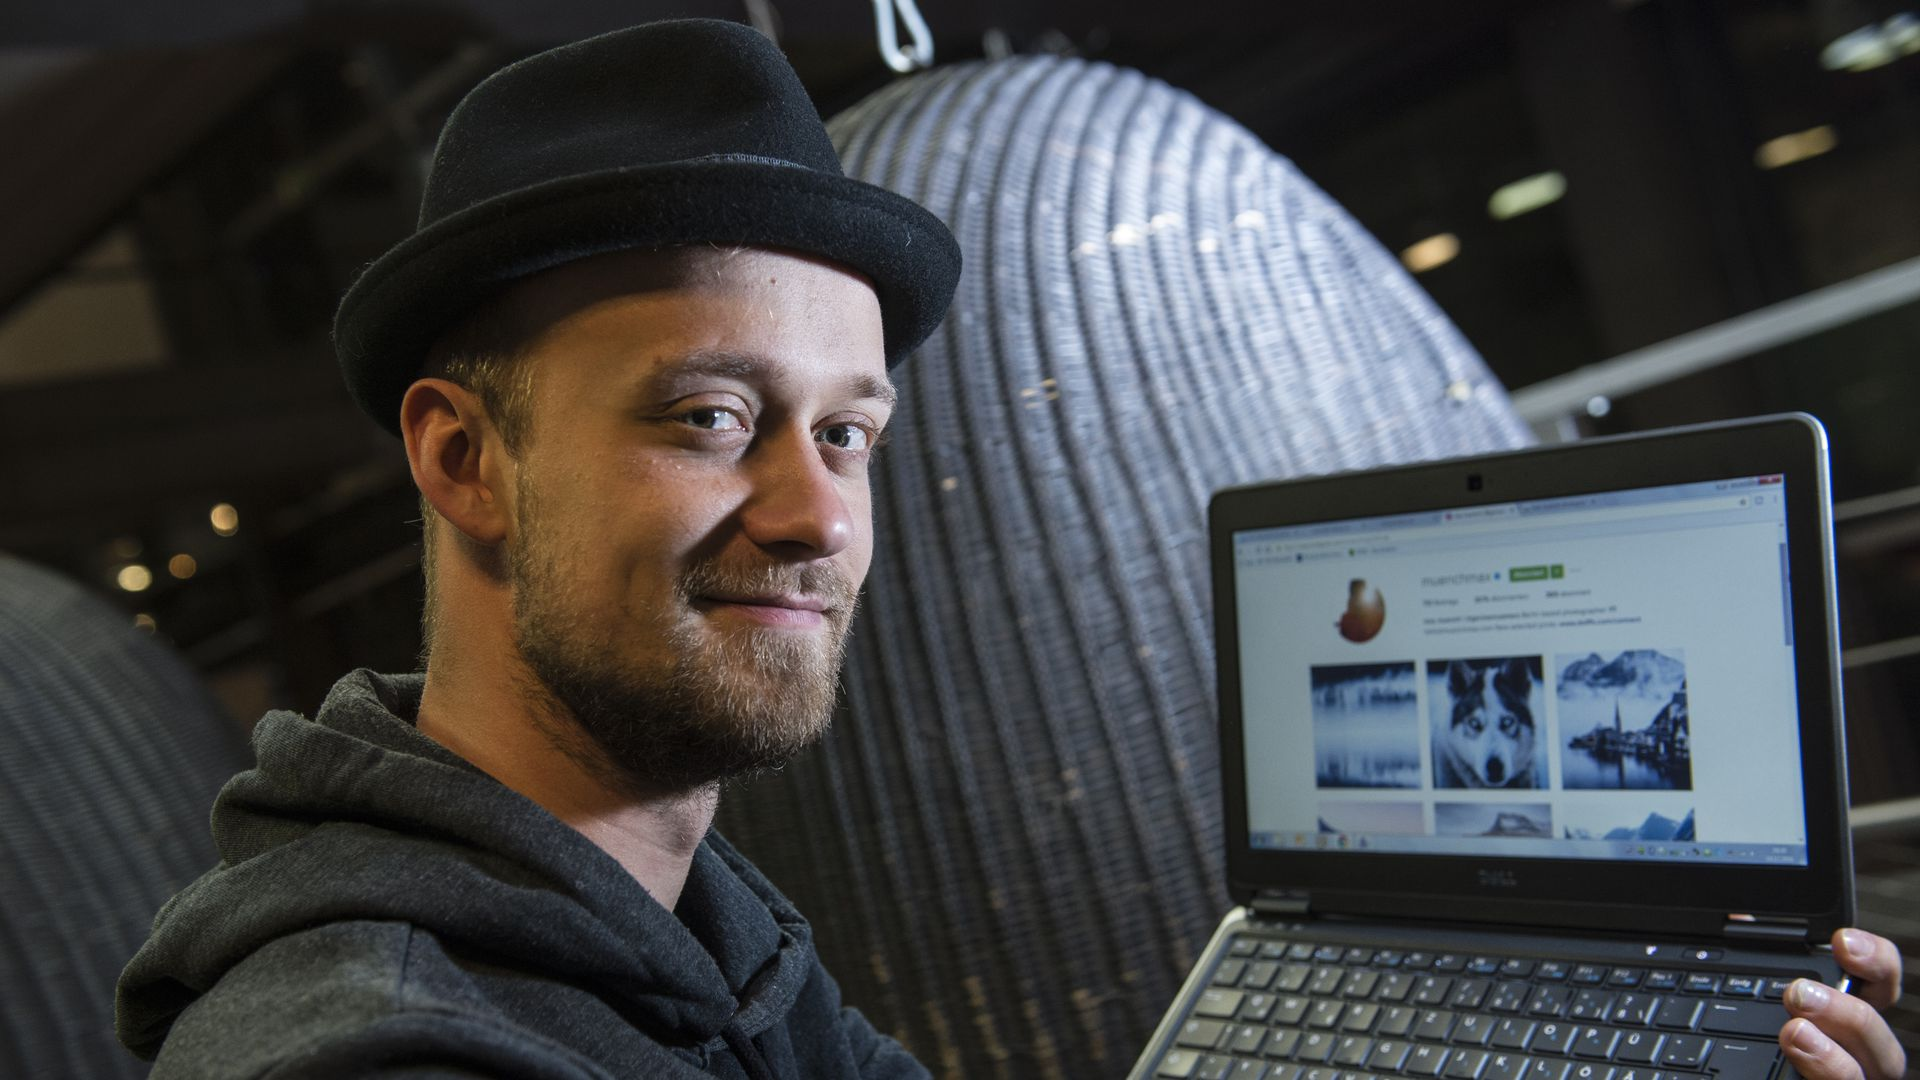 A man in a fedora shows off a laptop that's open to Instagram